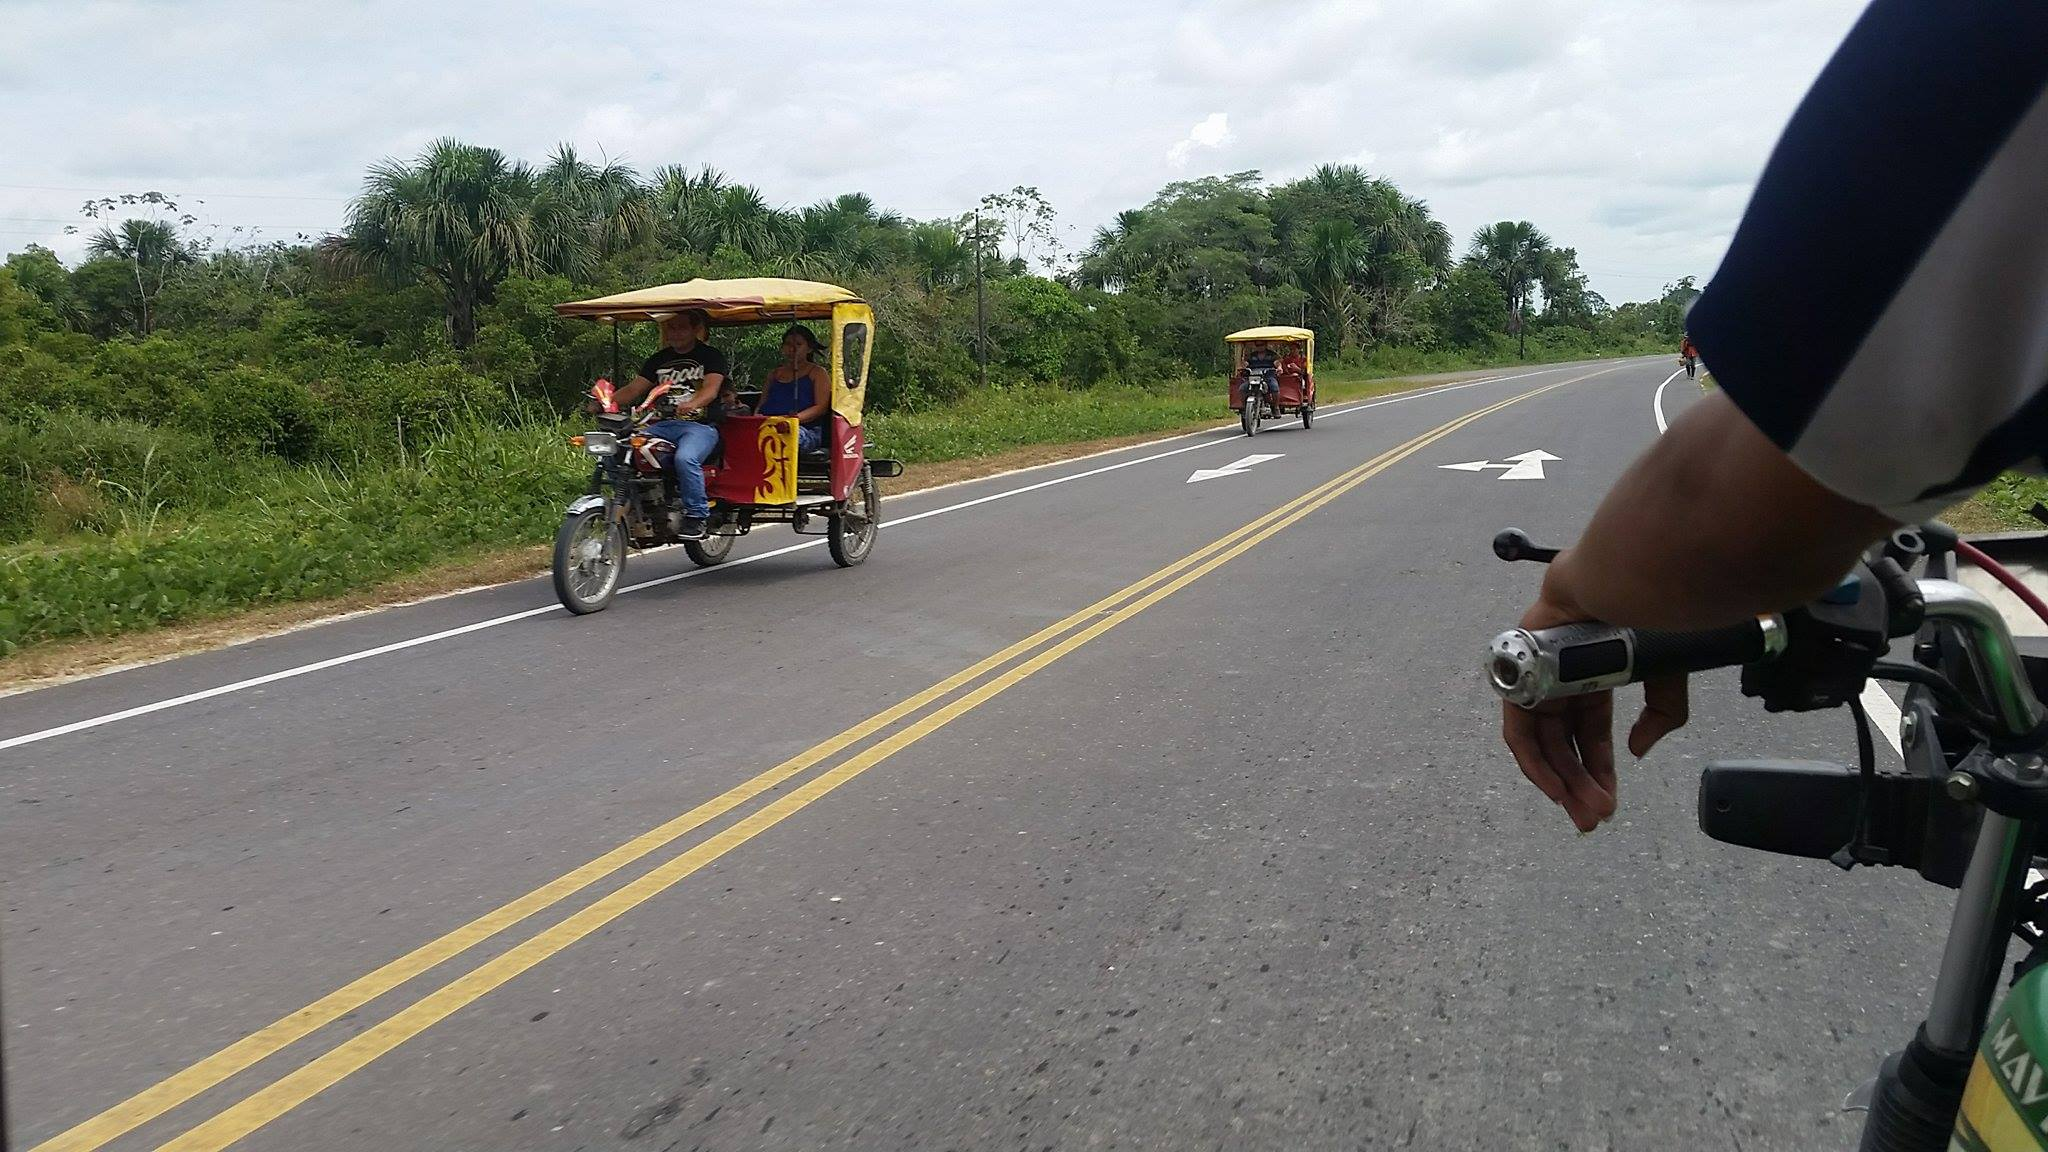 """The accident happened in the middle of the night, so this isn't a picture of the tuk tuk involved; rather, it's just here to show what a """"tuk tuk"""" is."""